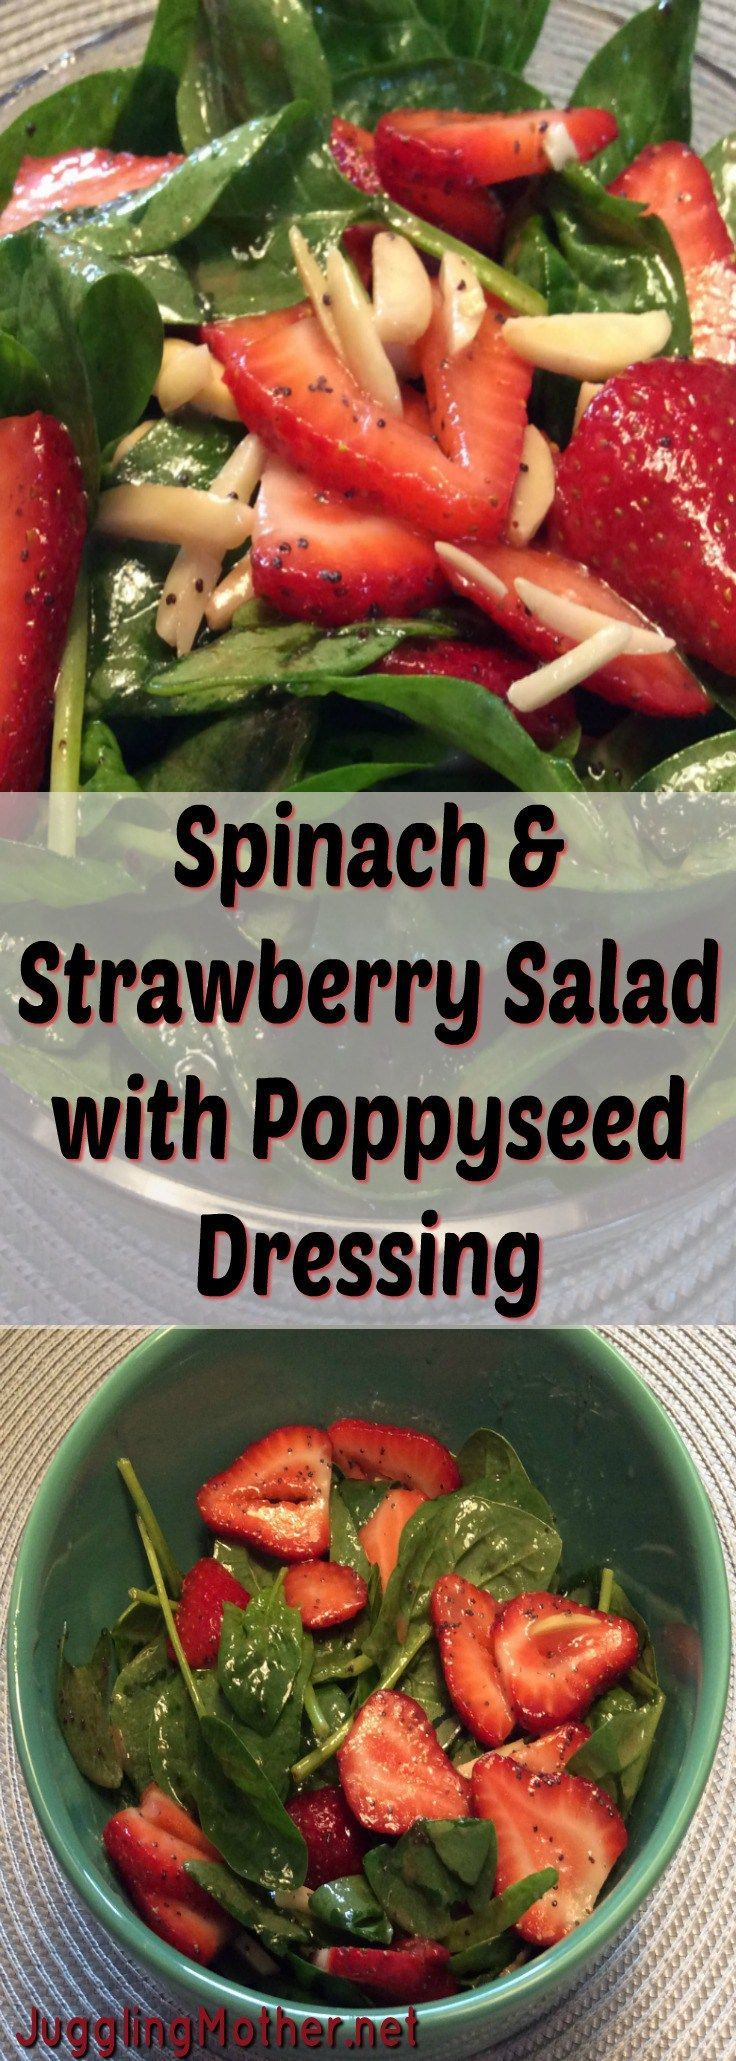 Spinach & Strawberry Salad with Poppy Seed Dressing -